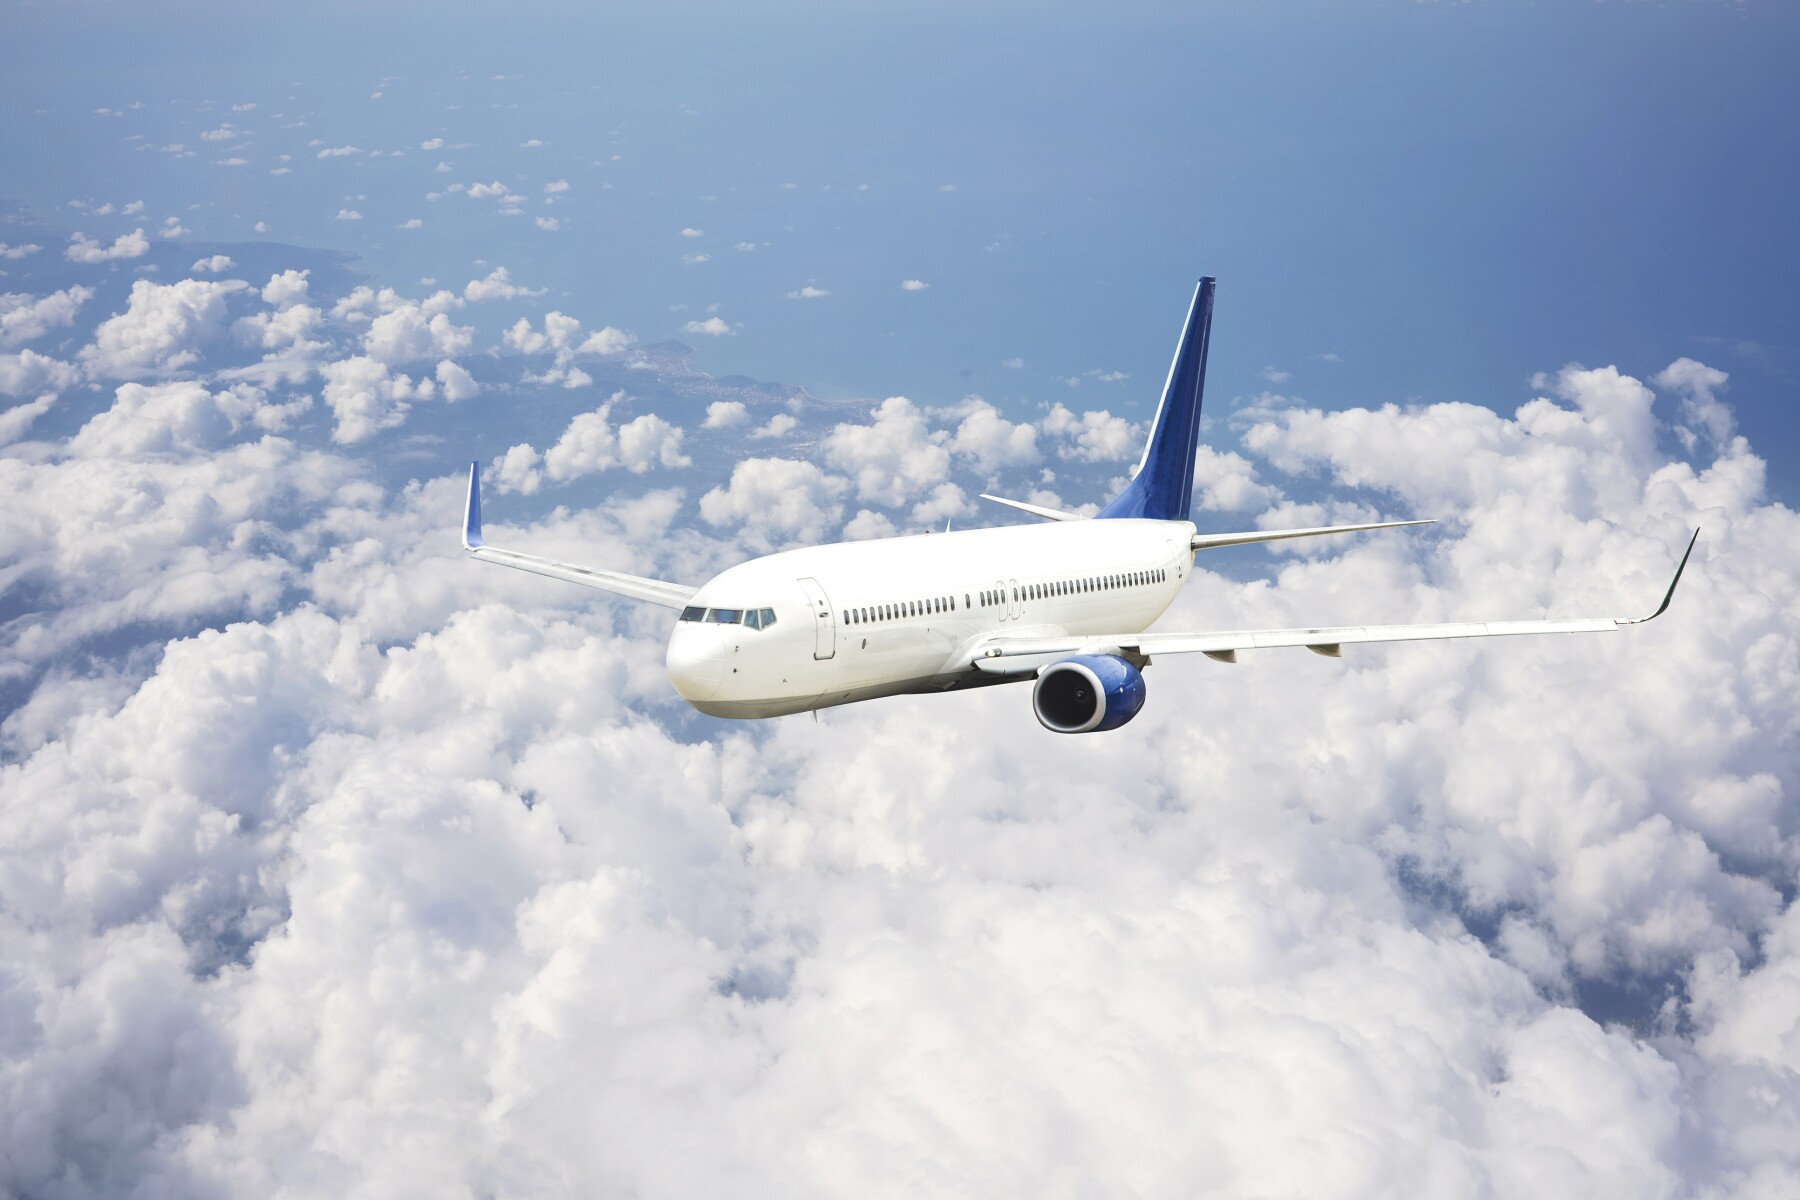 Passenger jet airplane flying above clouds.